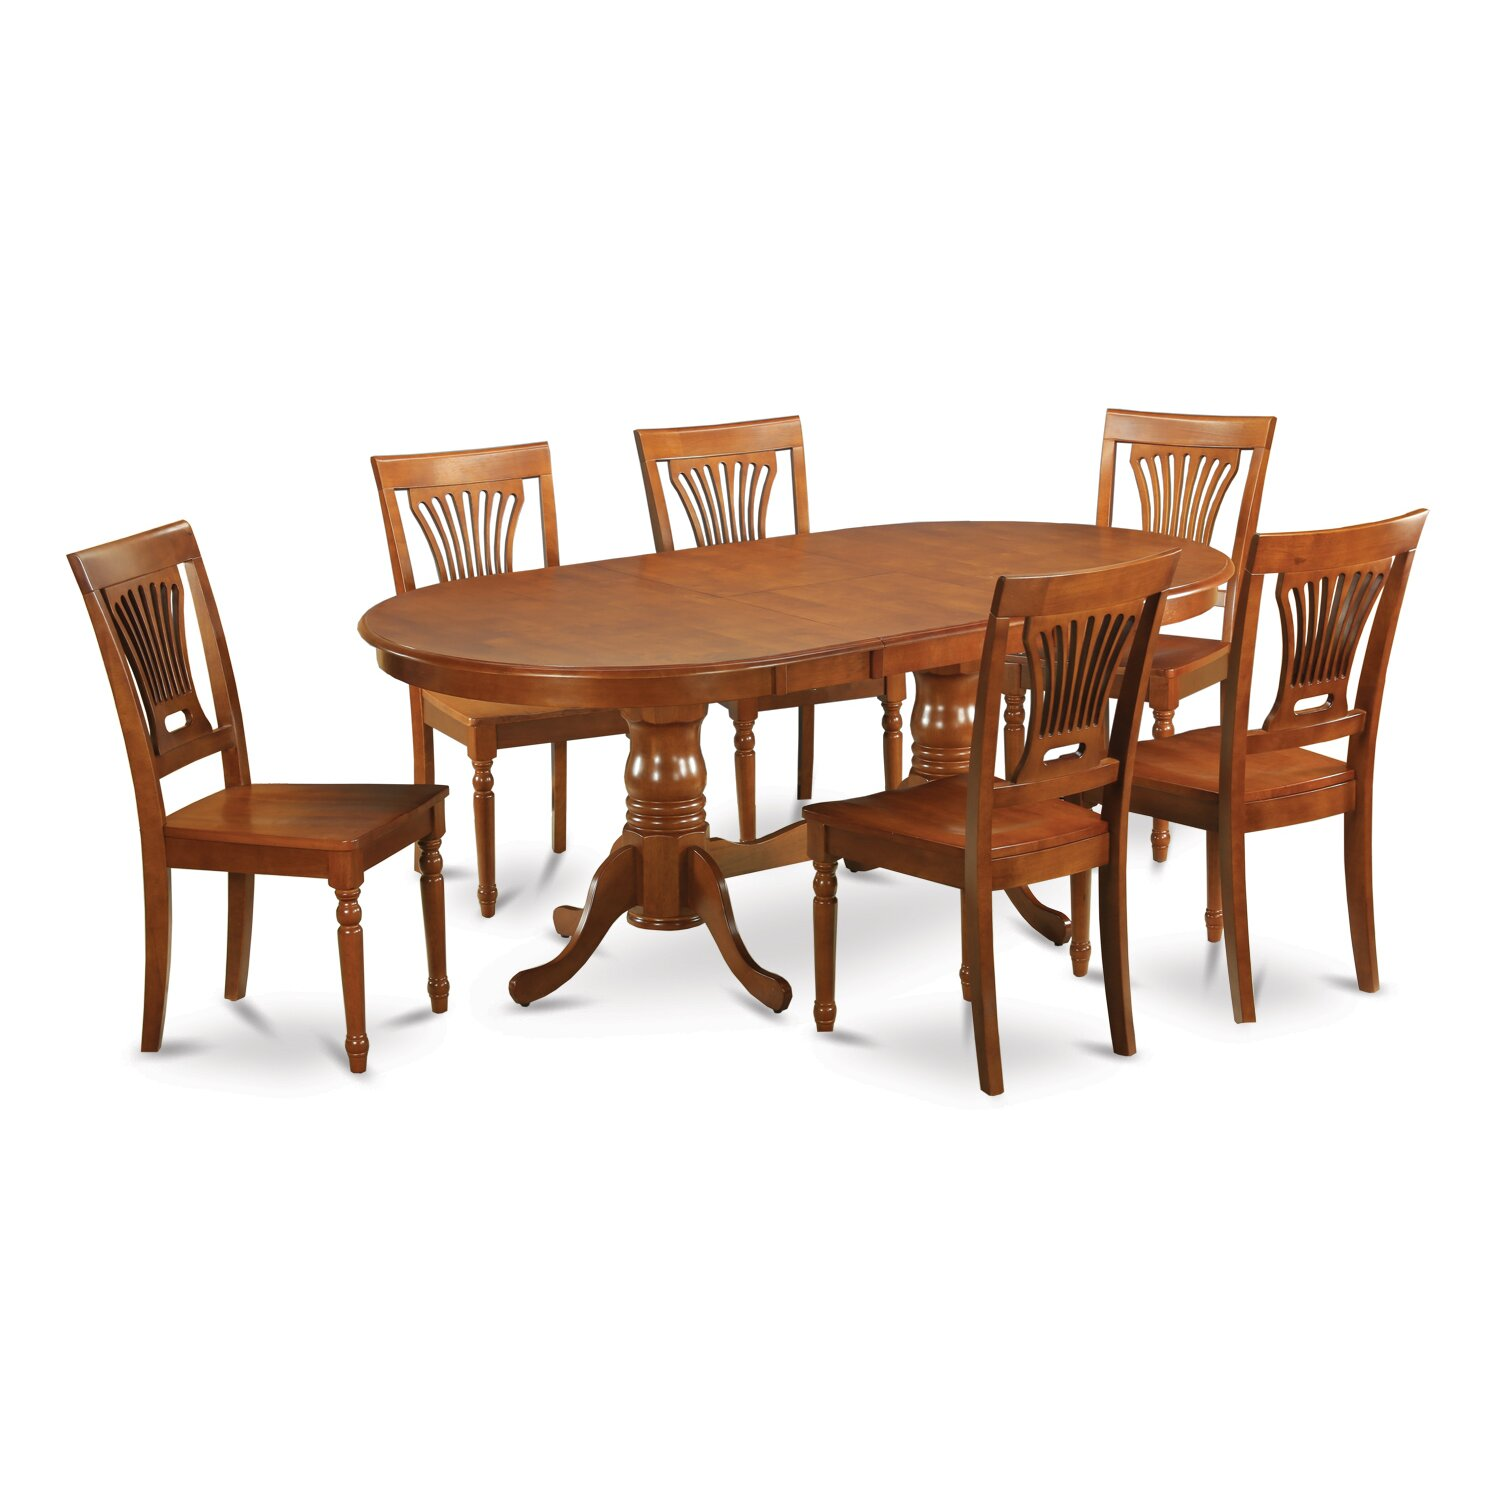 Darby Home Co Germantown 7 Piece Dining Set Reviews Wayfair .